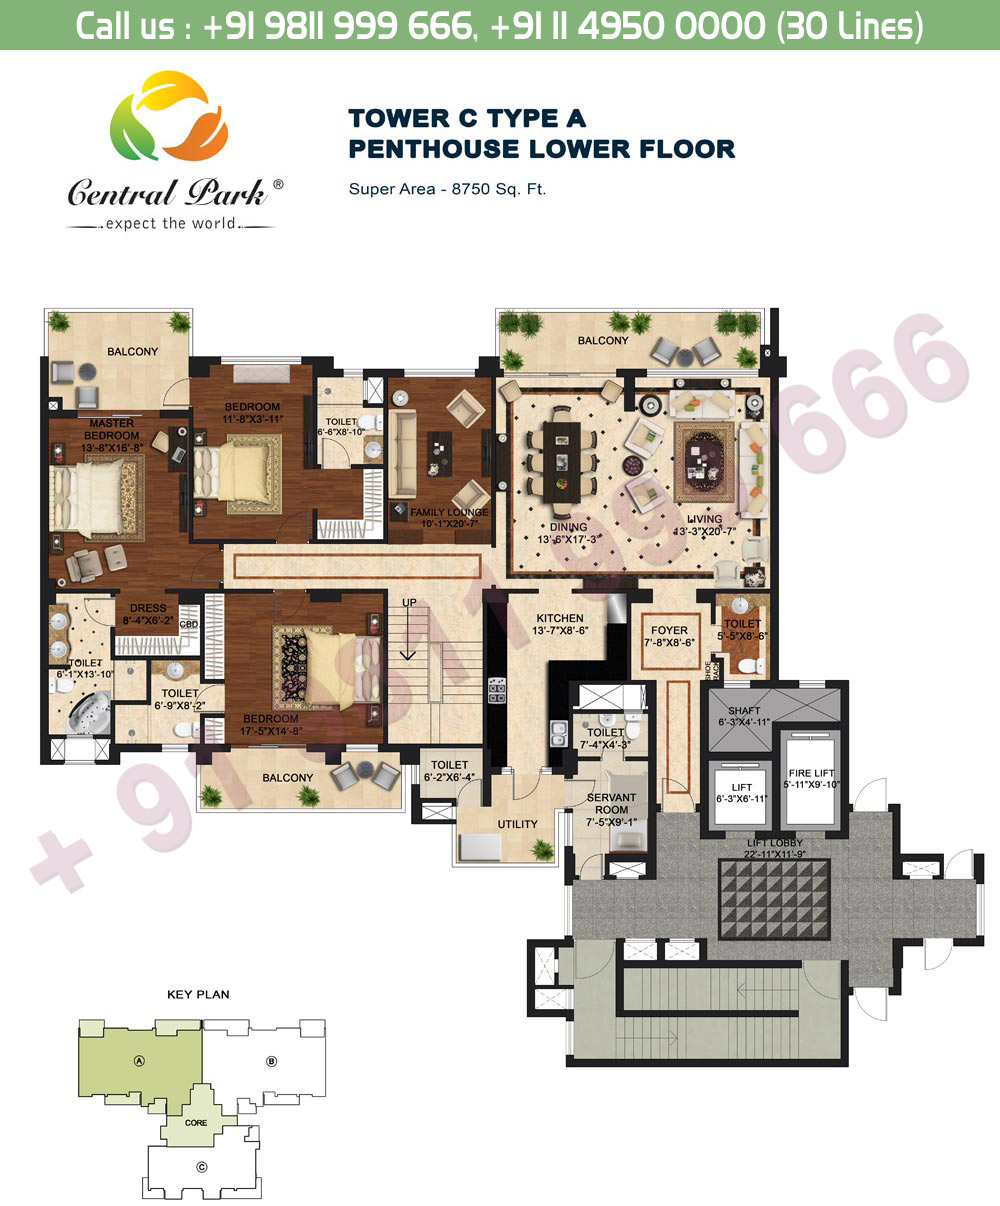 Tower - C, Type - A, Penthouse Lower Floor:  8750 Sq. Ft